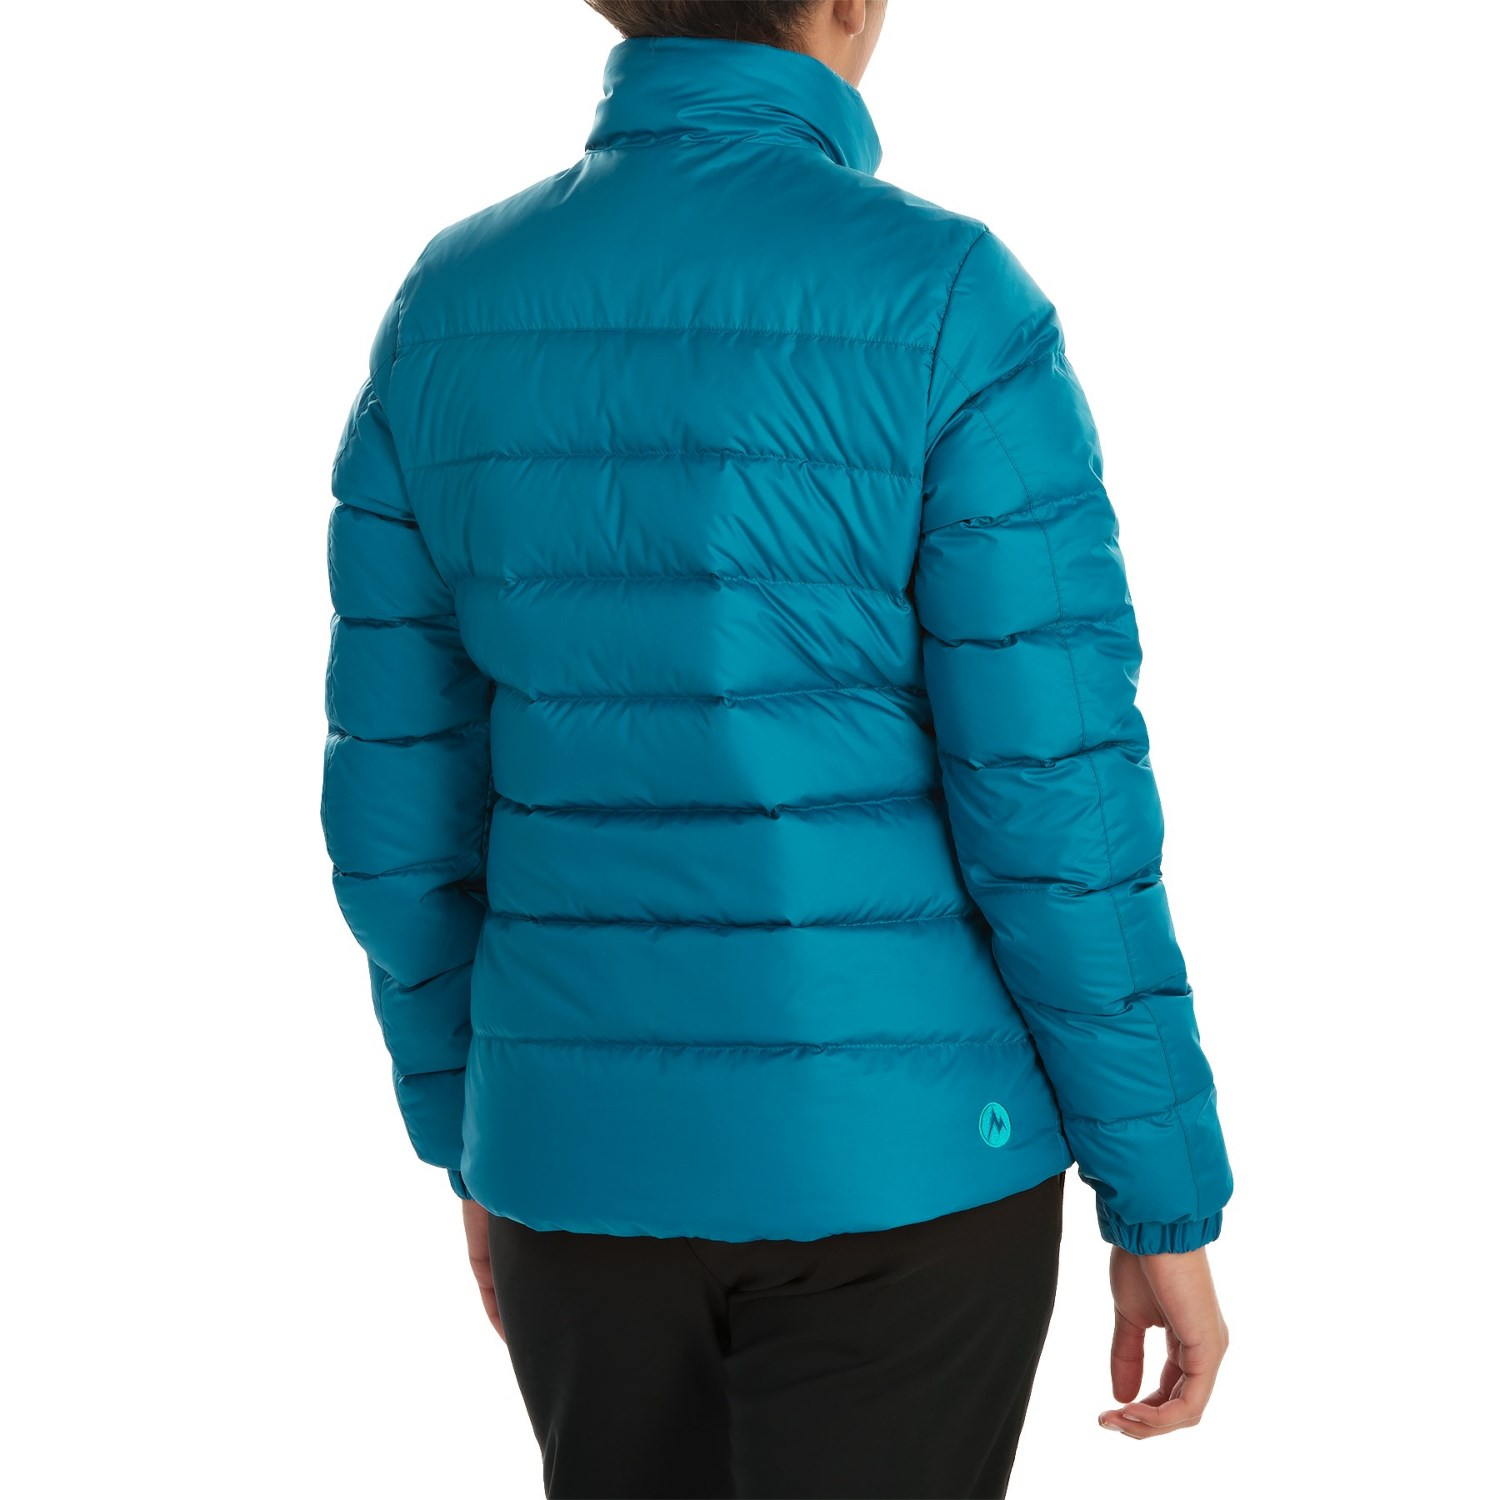 6786G 3 Marmot Guides Down Jacket 700 Fill Power For Women